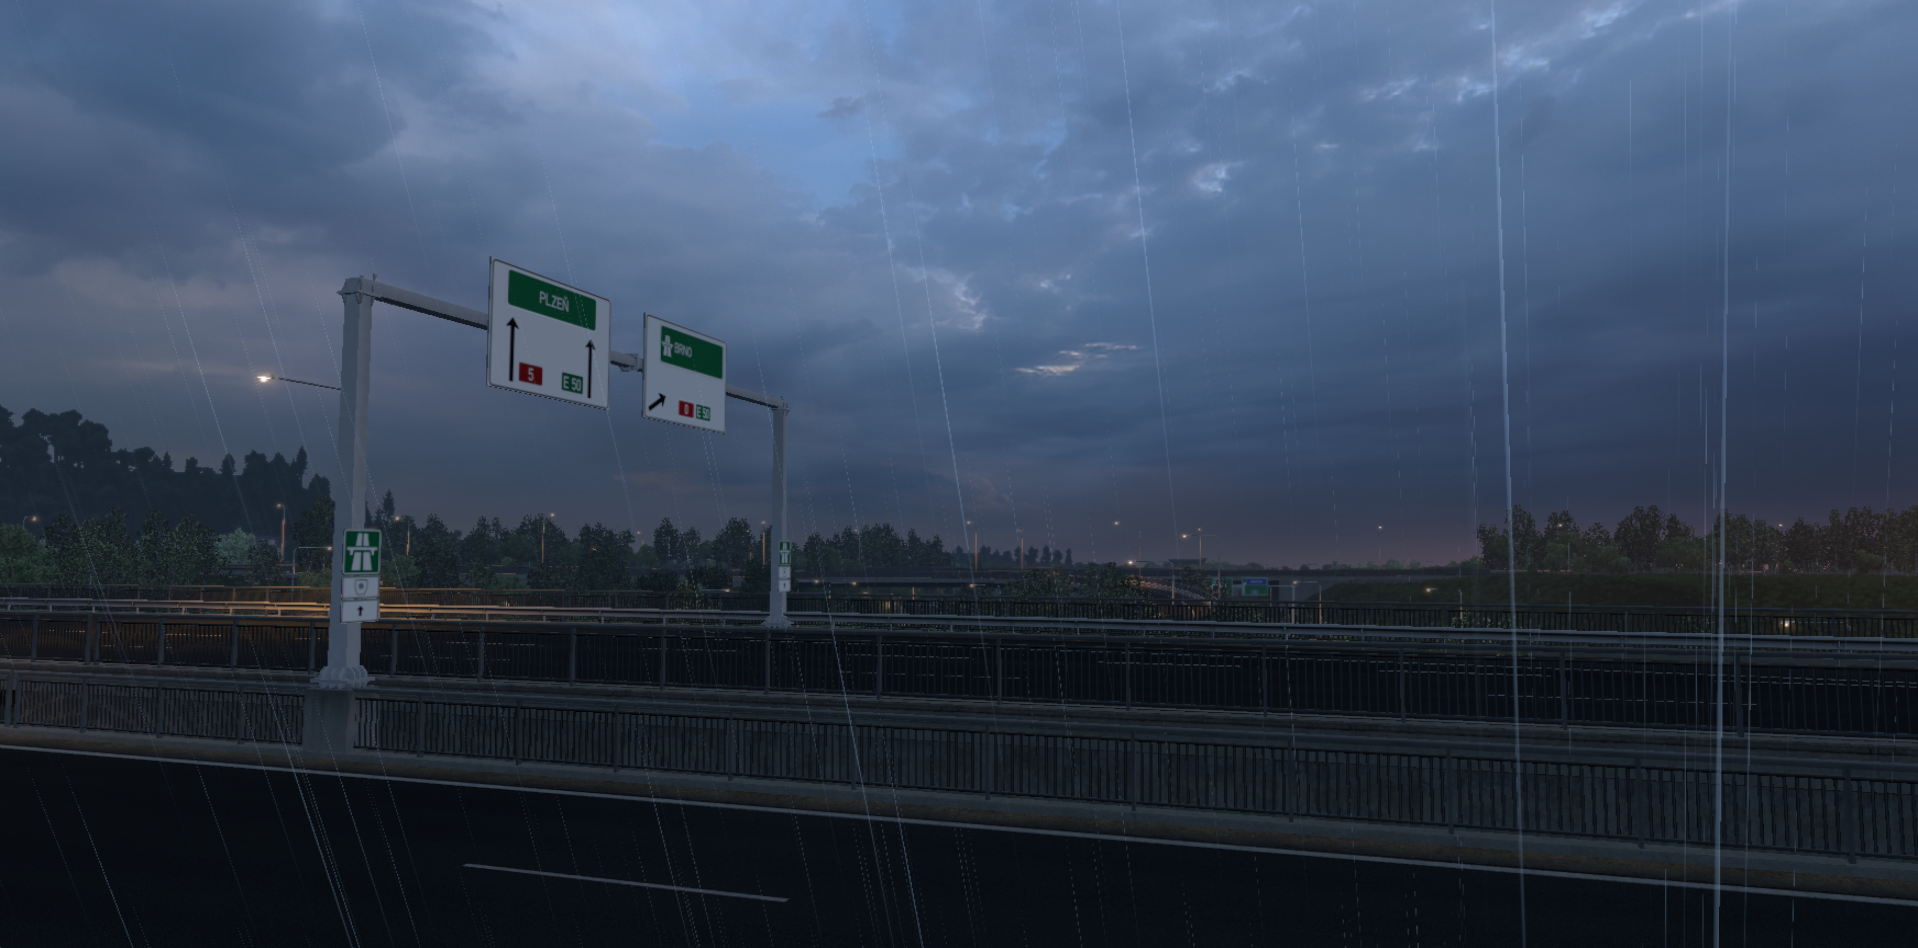 ets2_20210804_143519_00.png